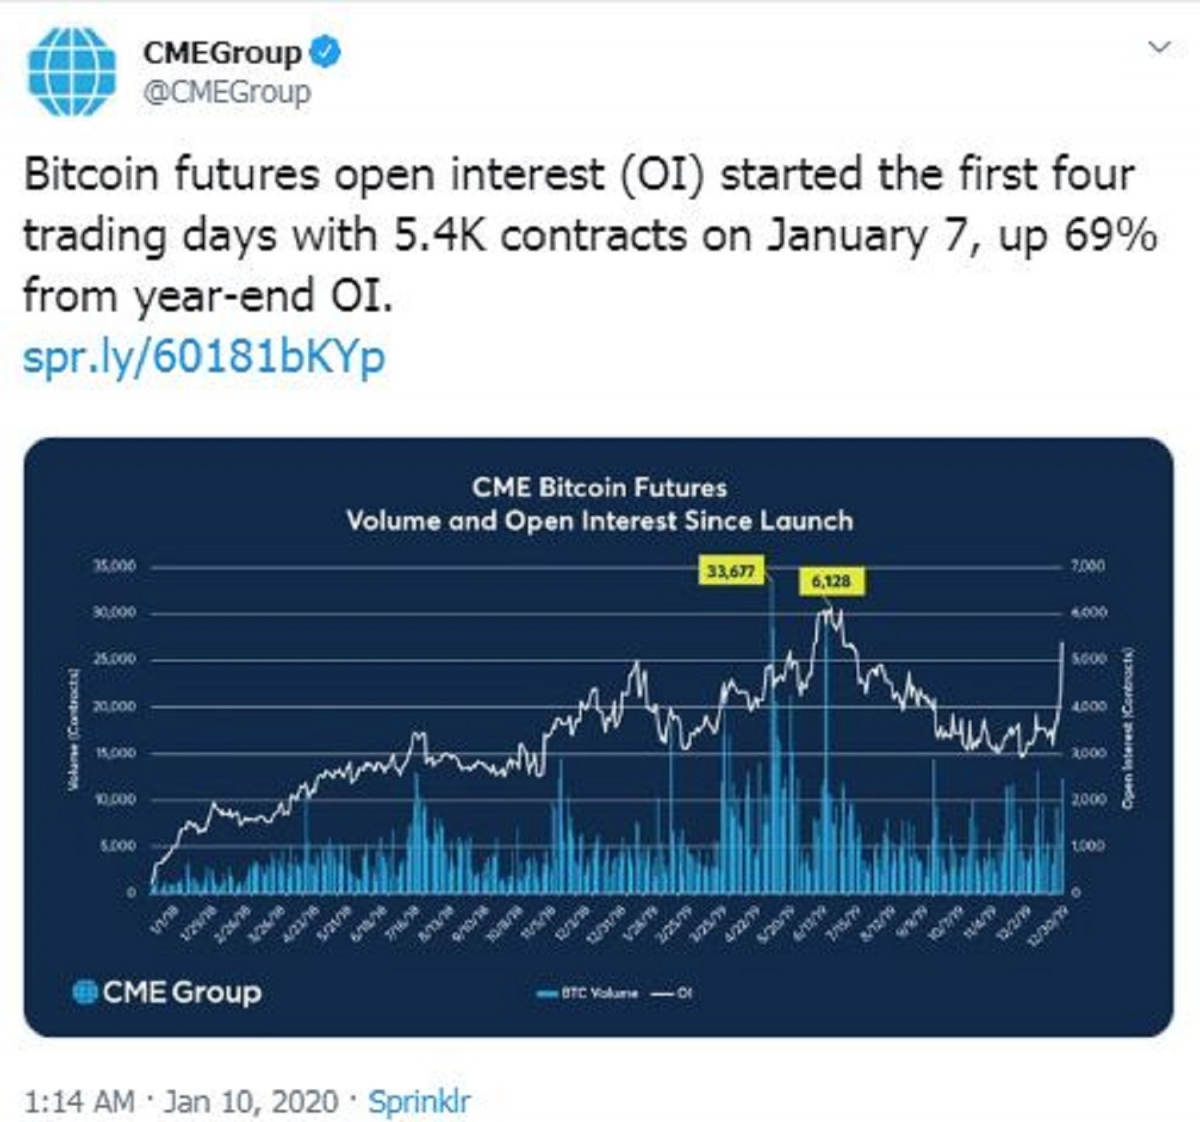 cme group cryptocurrency